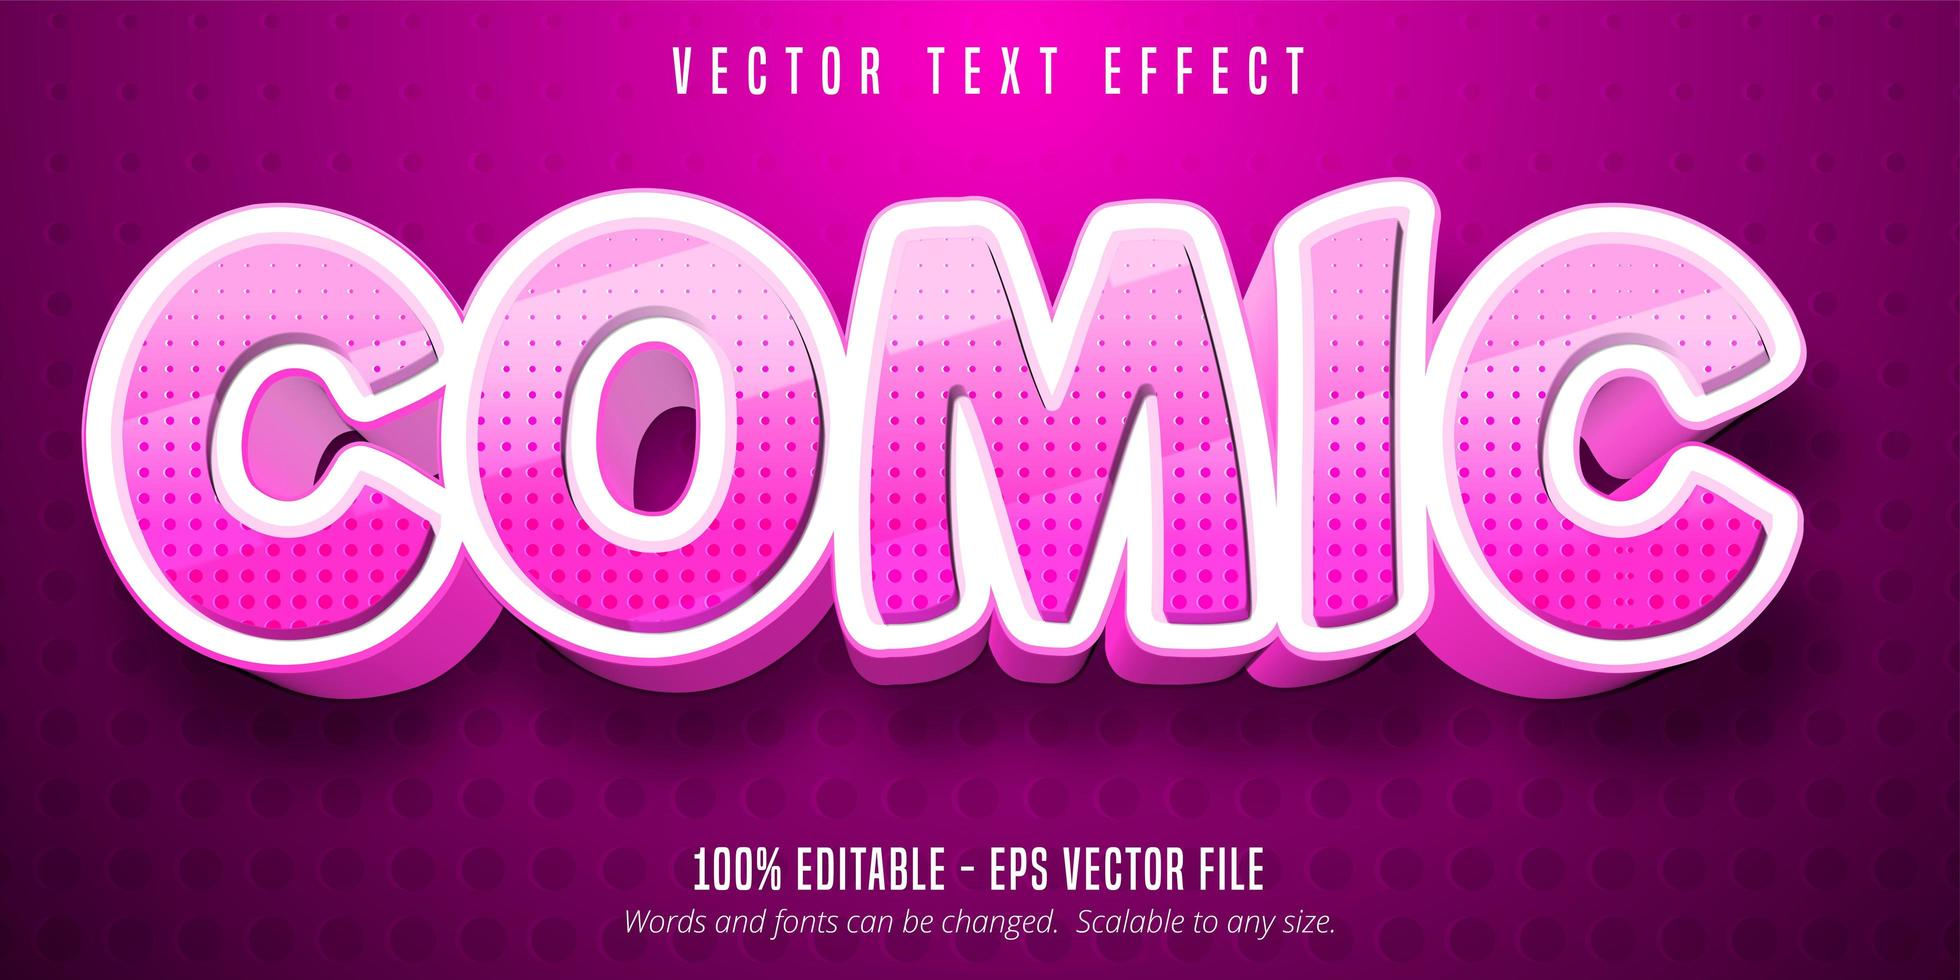 Dotted pink comic cartoon style editable text effect vector